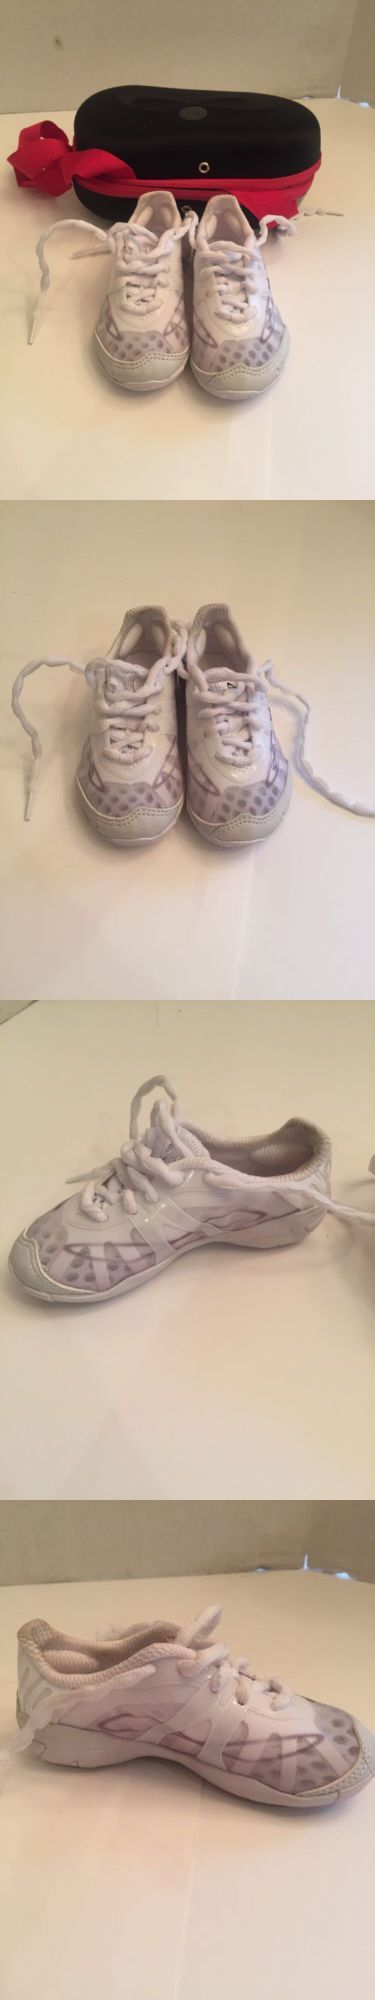 Cheerleading 66832: Nfinity Vengeance Cheer Shoes, White, Youth Size 10 -> BUY IT NOW ONLY: $75 on eBay!